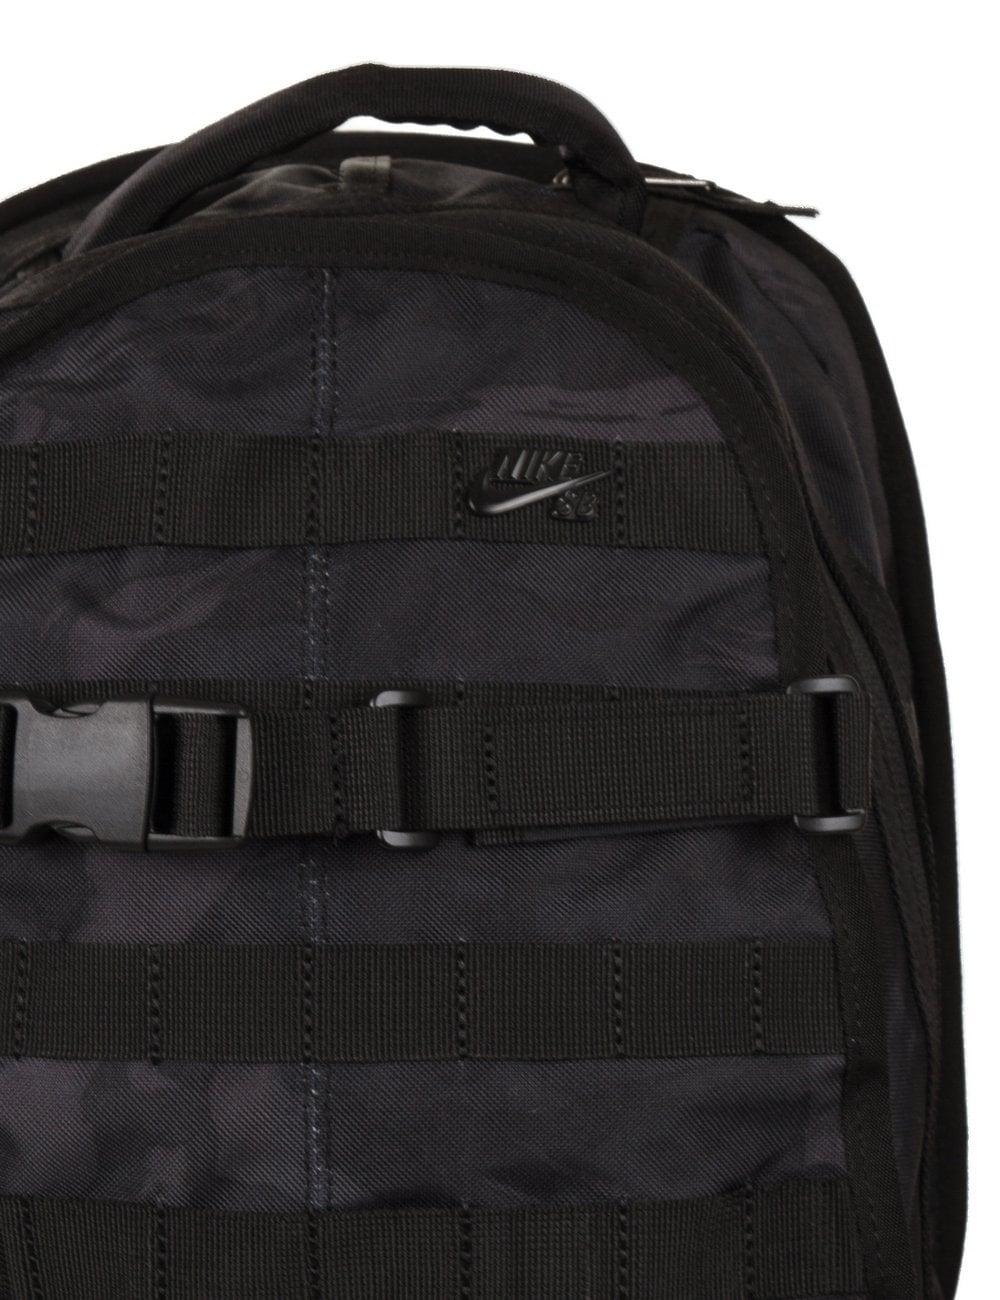 99bd9d7cdd Nike Sb Backpack Black And White | The Shred Centre